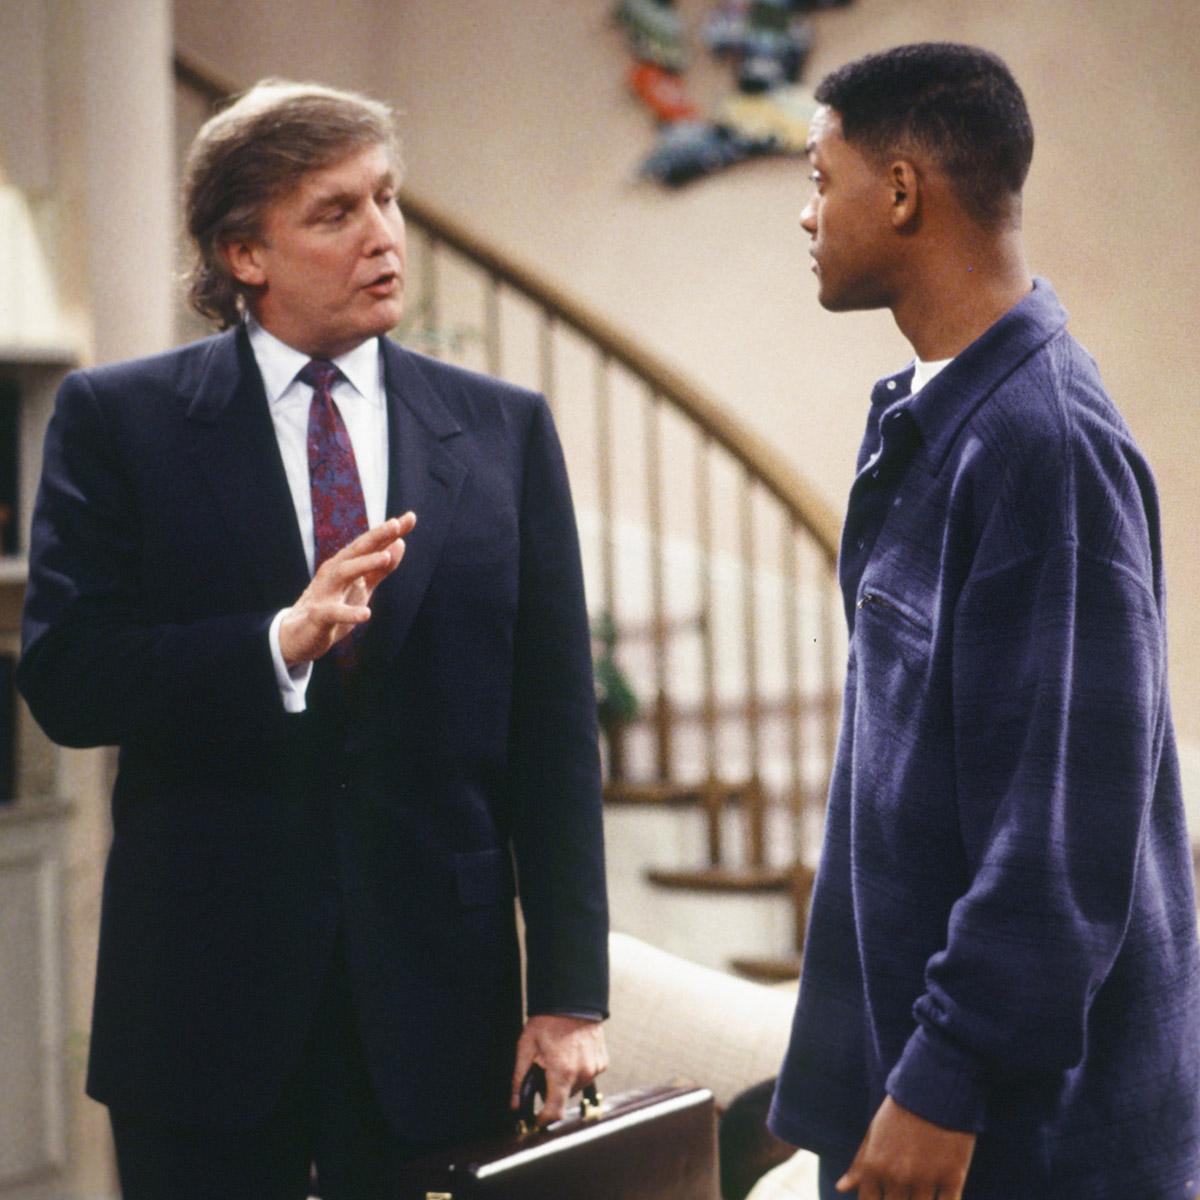 ¿Cuánto mide Donald Trump? - Estatura real y peso - Real height and weight - Página 6 Fresh-prince-of-bel-air-guest-stars